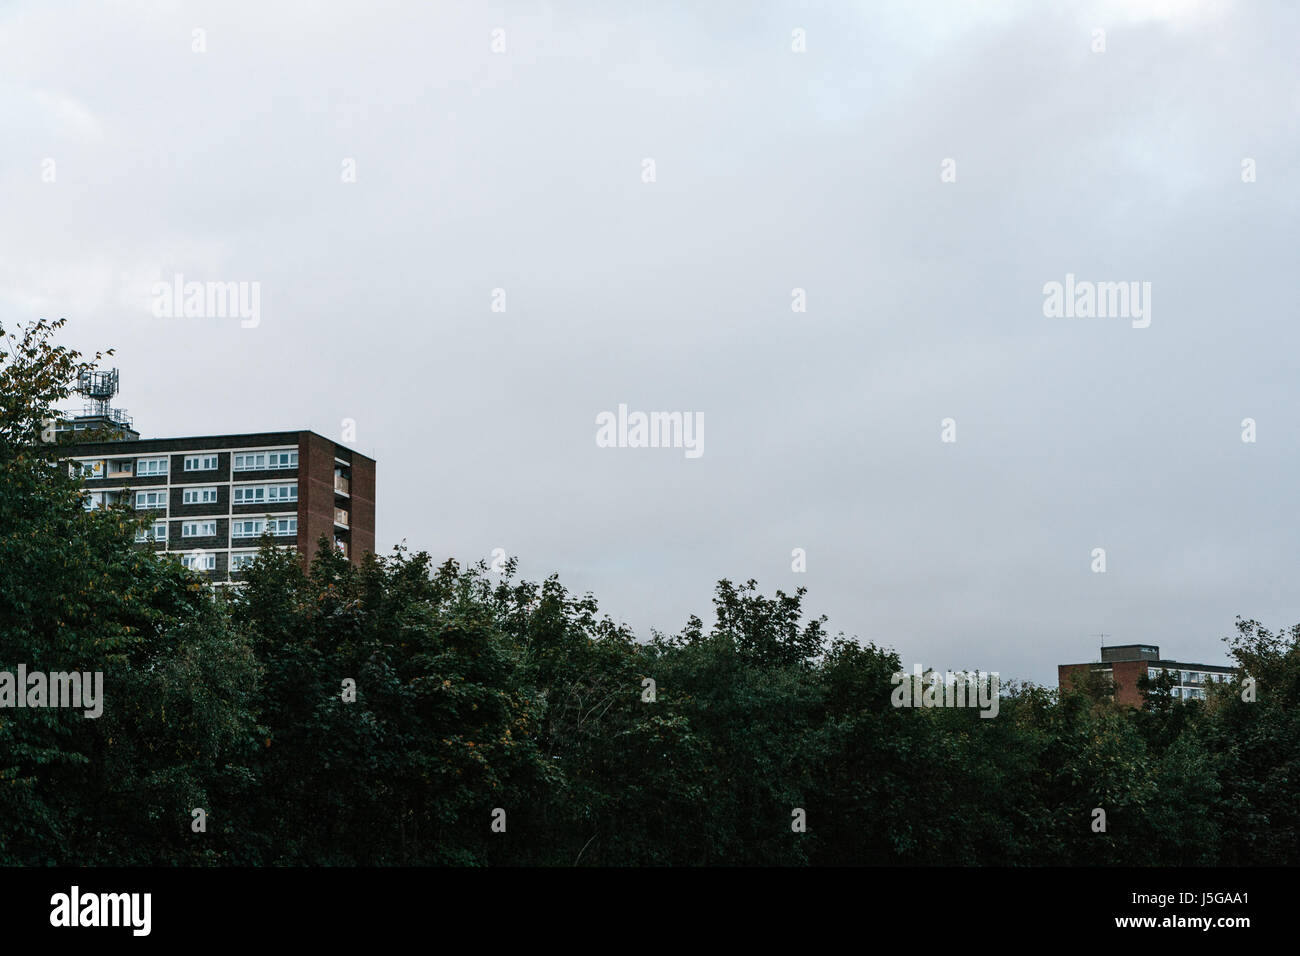 Social housing in the Tiger's Bay area of Belfast. - Stock Image